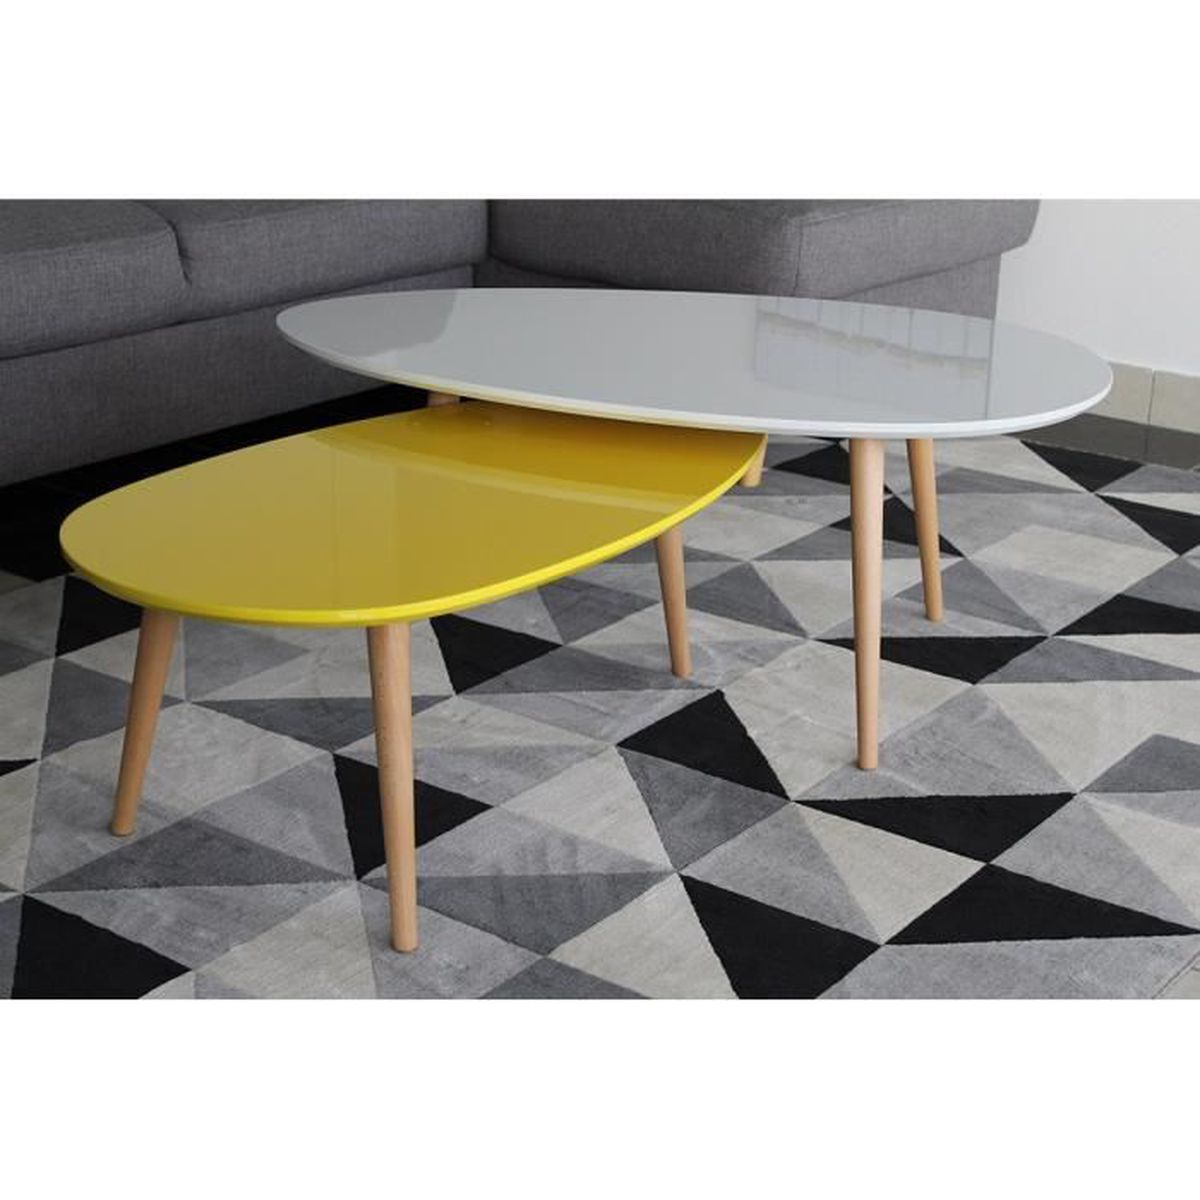 100 table basse gigogne maison du table basse achat vente table basse - Tables basses gigognes ...